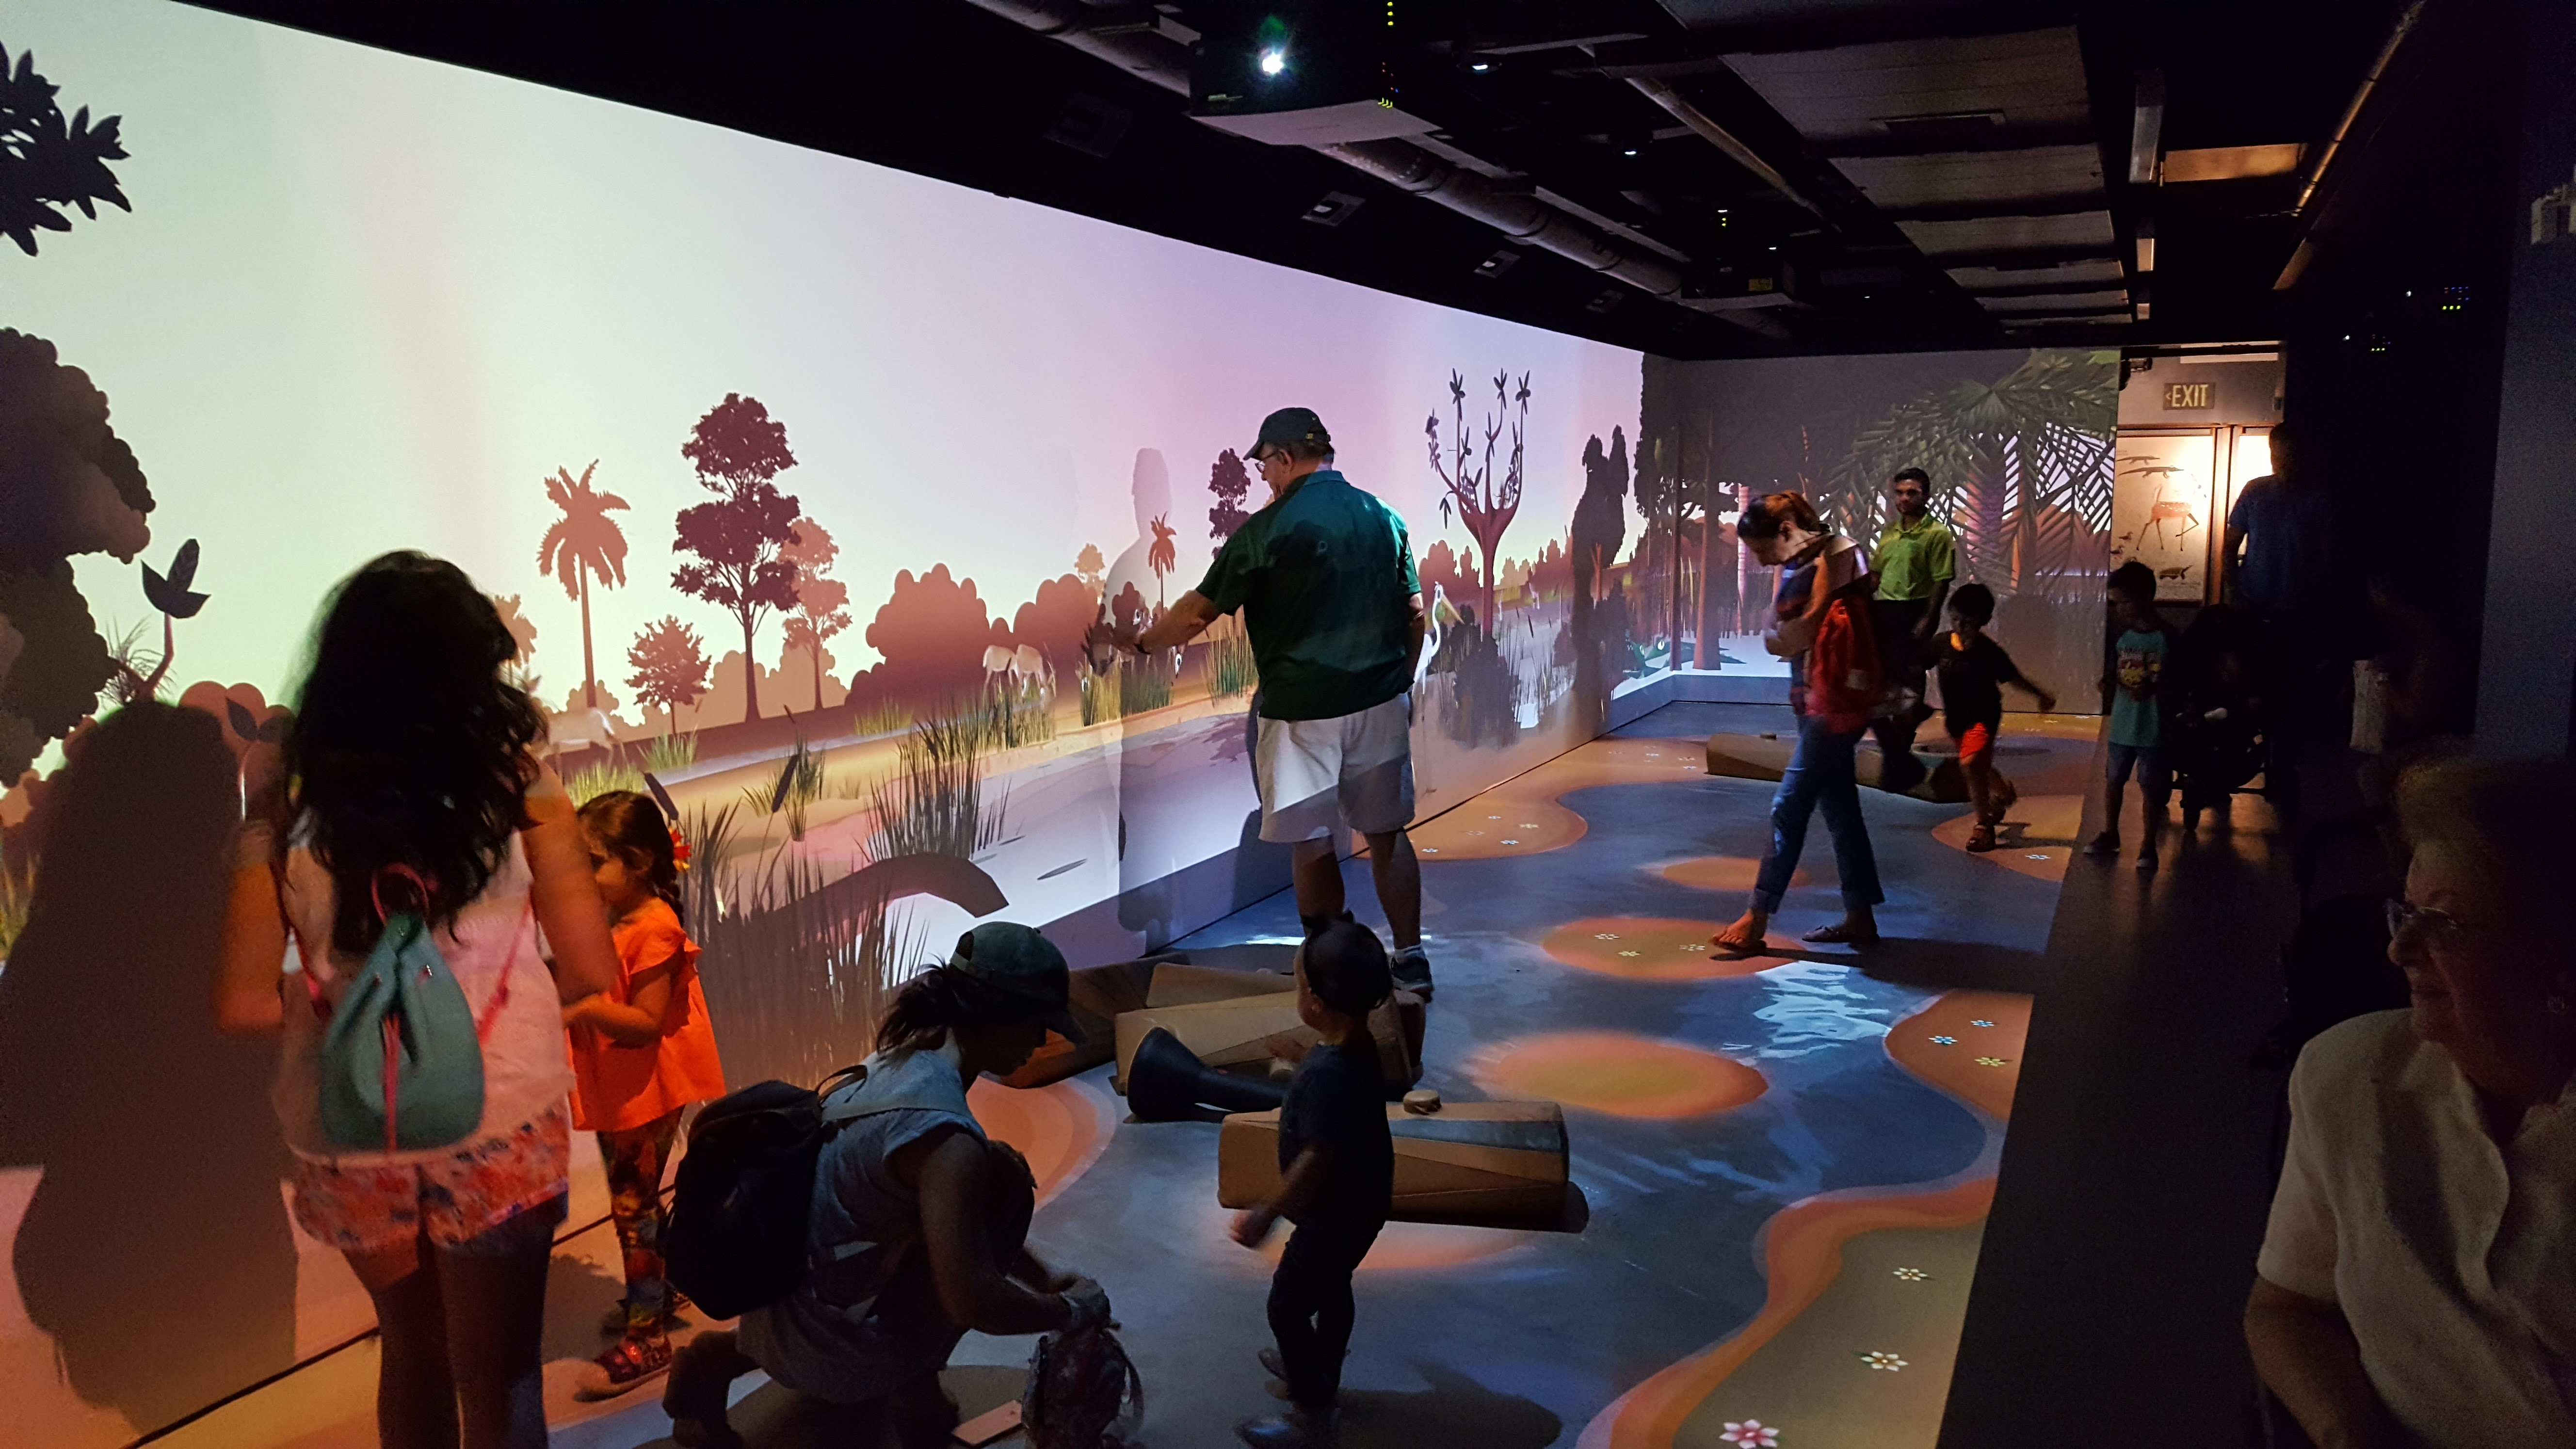 F64749242 together with File Digital  interactive  27River of Grass 27 exhibit at Frost Museum of Science in Miami additionally Reiseroute 2 Wochen Florida Usa as well Gator Attack besides Everglades National Park. on water in everglades